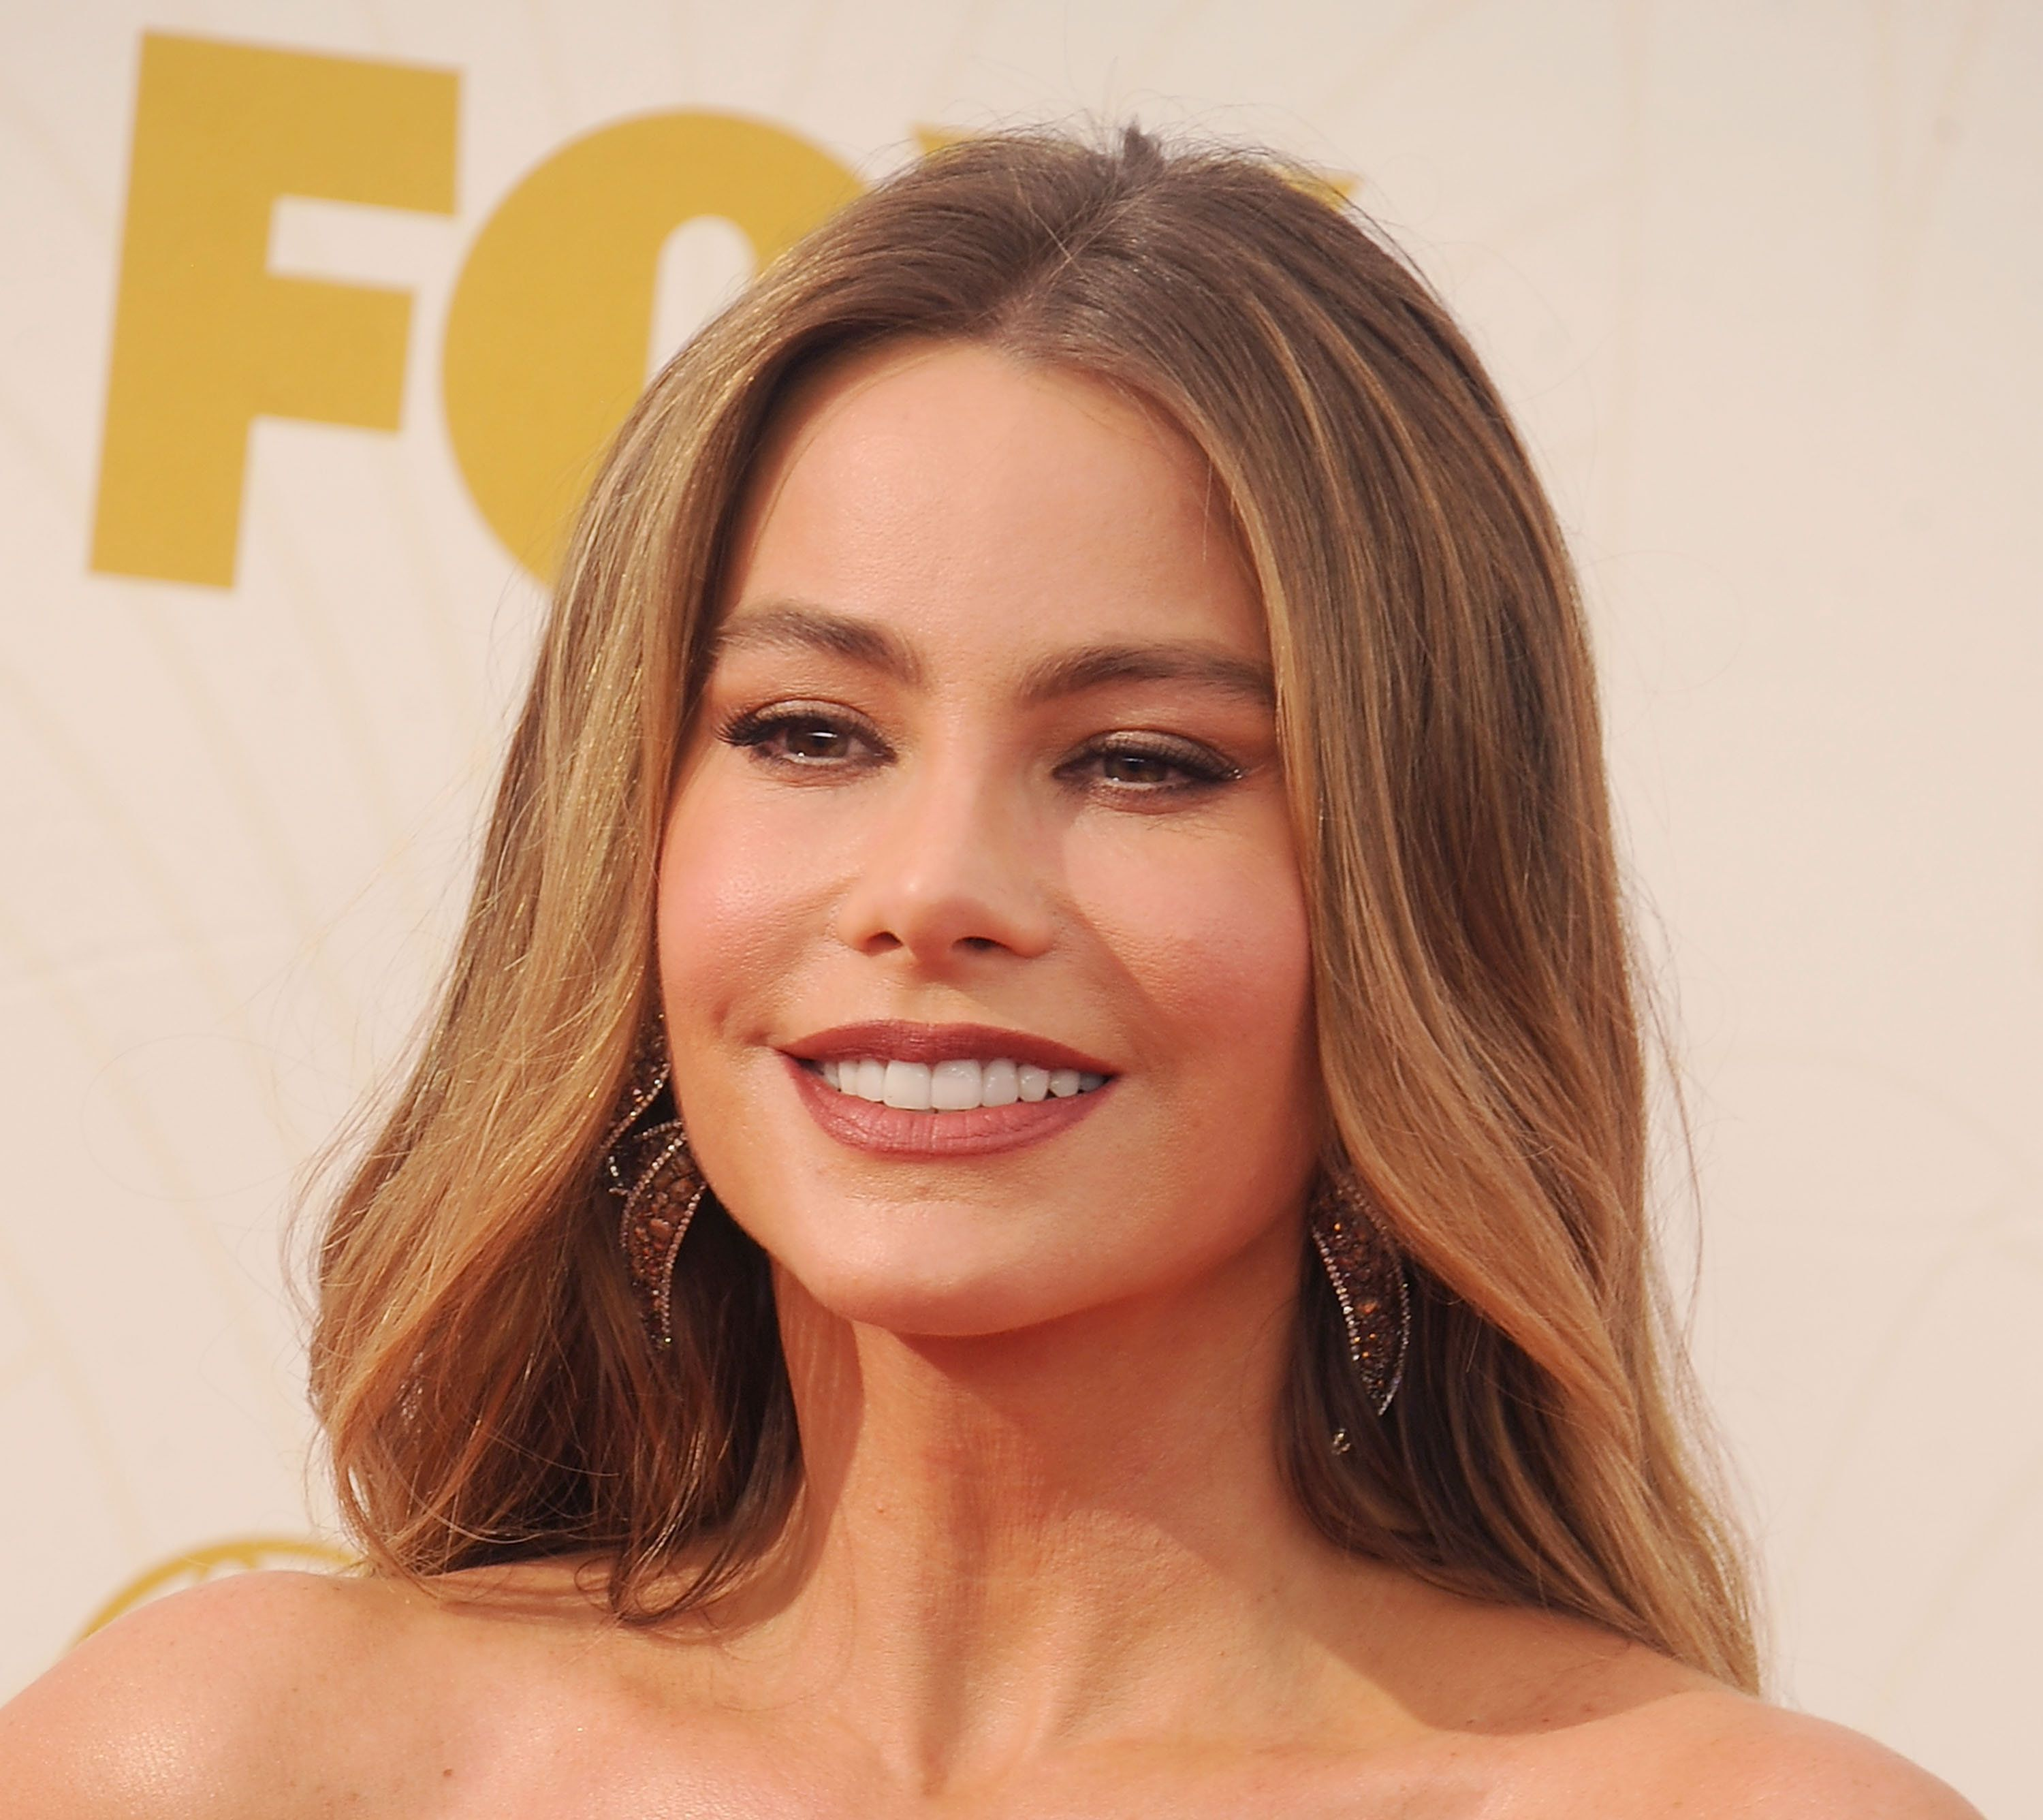 LOS ANGELES, CA - SEPTEMBER 20:  Actress Sofia Vergara arrives at the 67th Annual Primetime Emmy Awards at Microsoft Theater on September 20, 2015 in Los Angeles, California.  (Photo by Gregg DeGuire/WireImage)